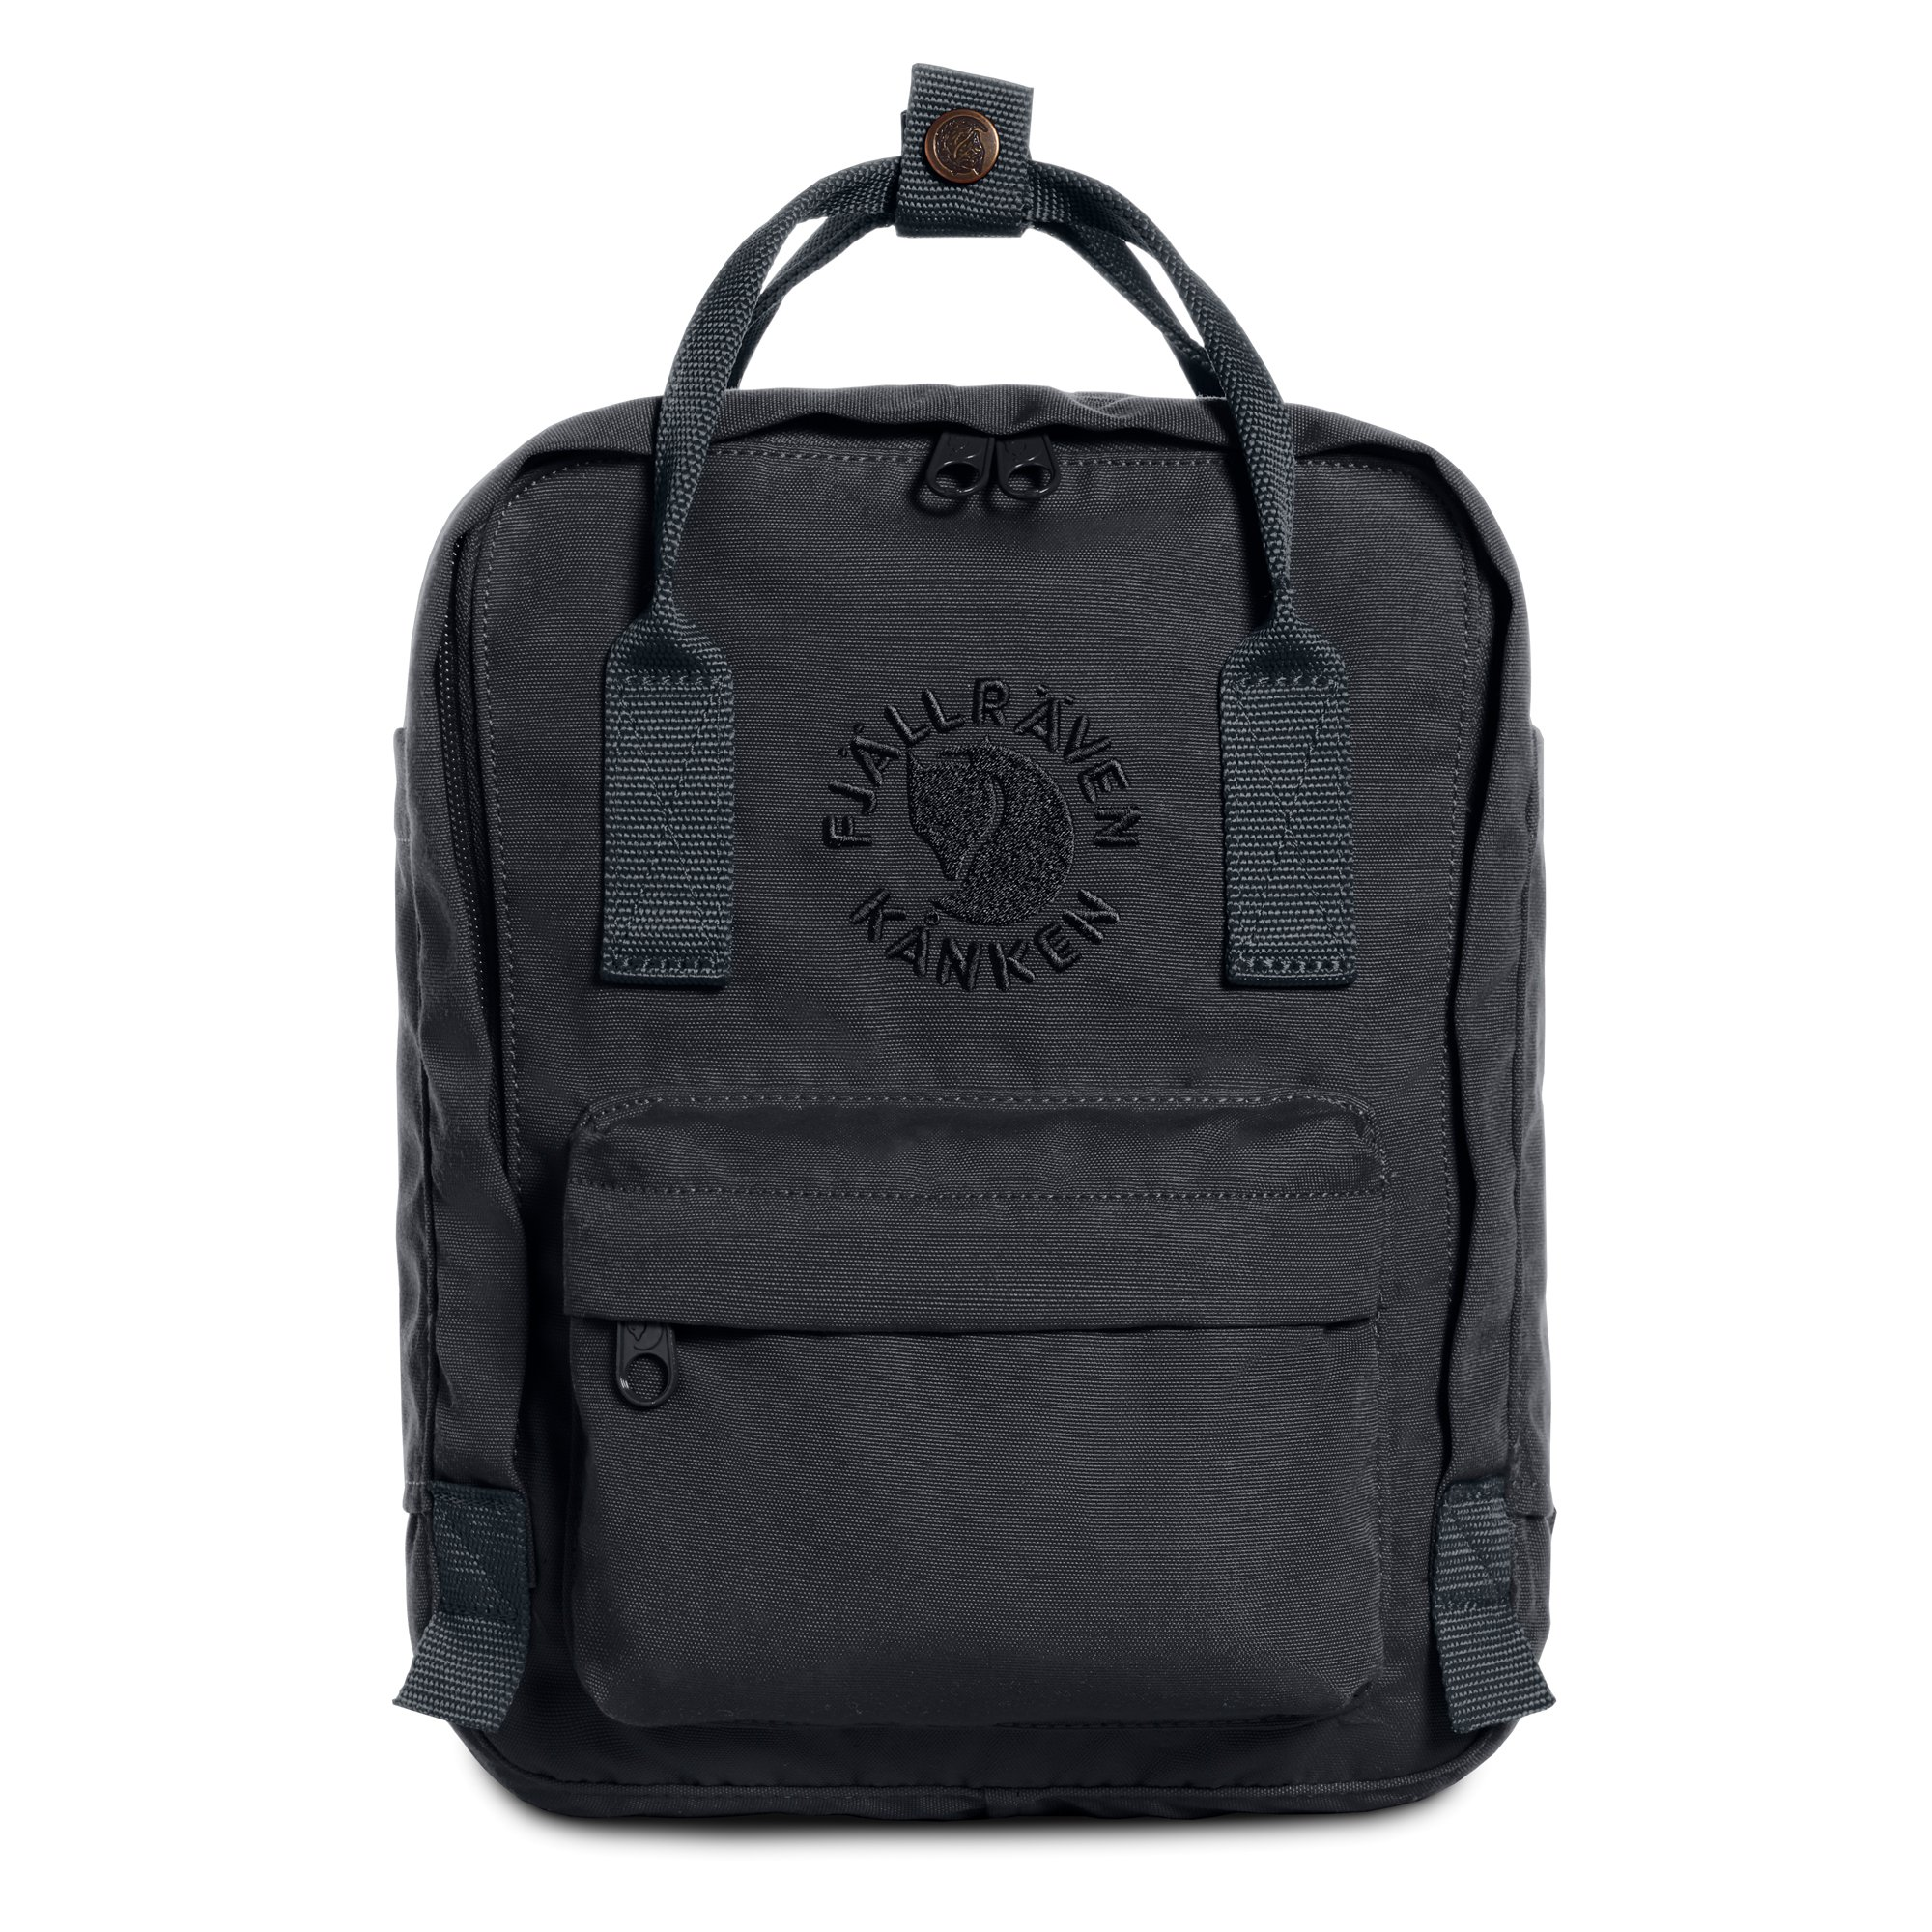 Fjallraven - Kanken, Re-Kanken Mini Recycled Backpack for Everyday Use, Heritage and Responsibility Since 1960, Slate